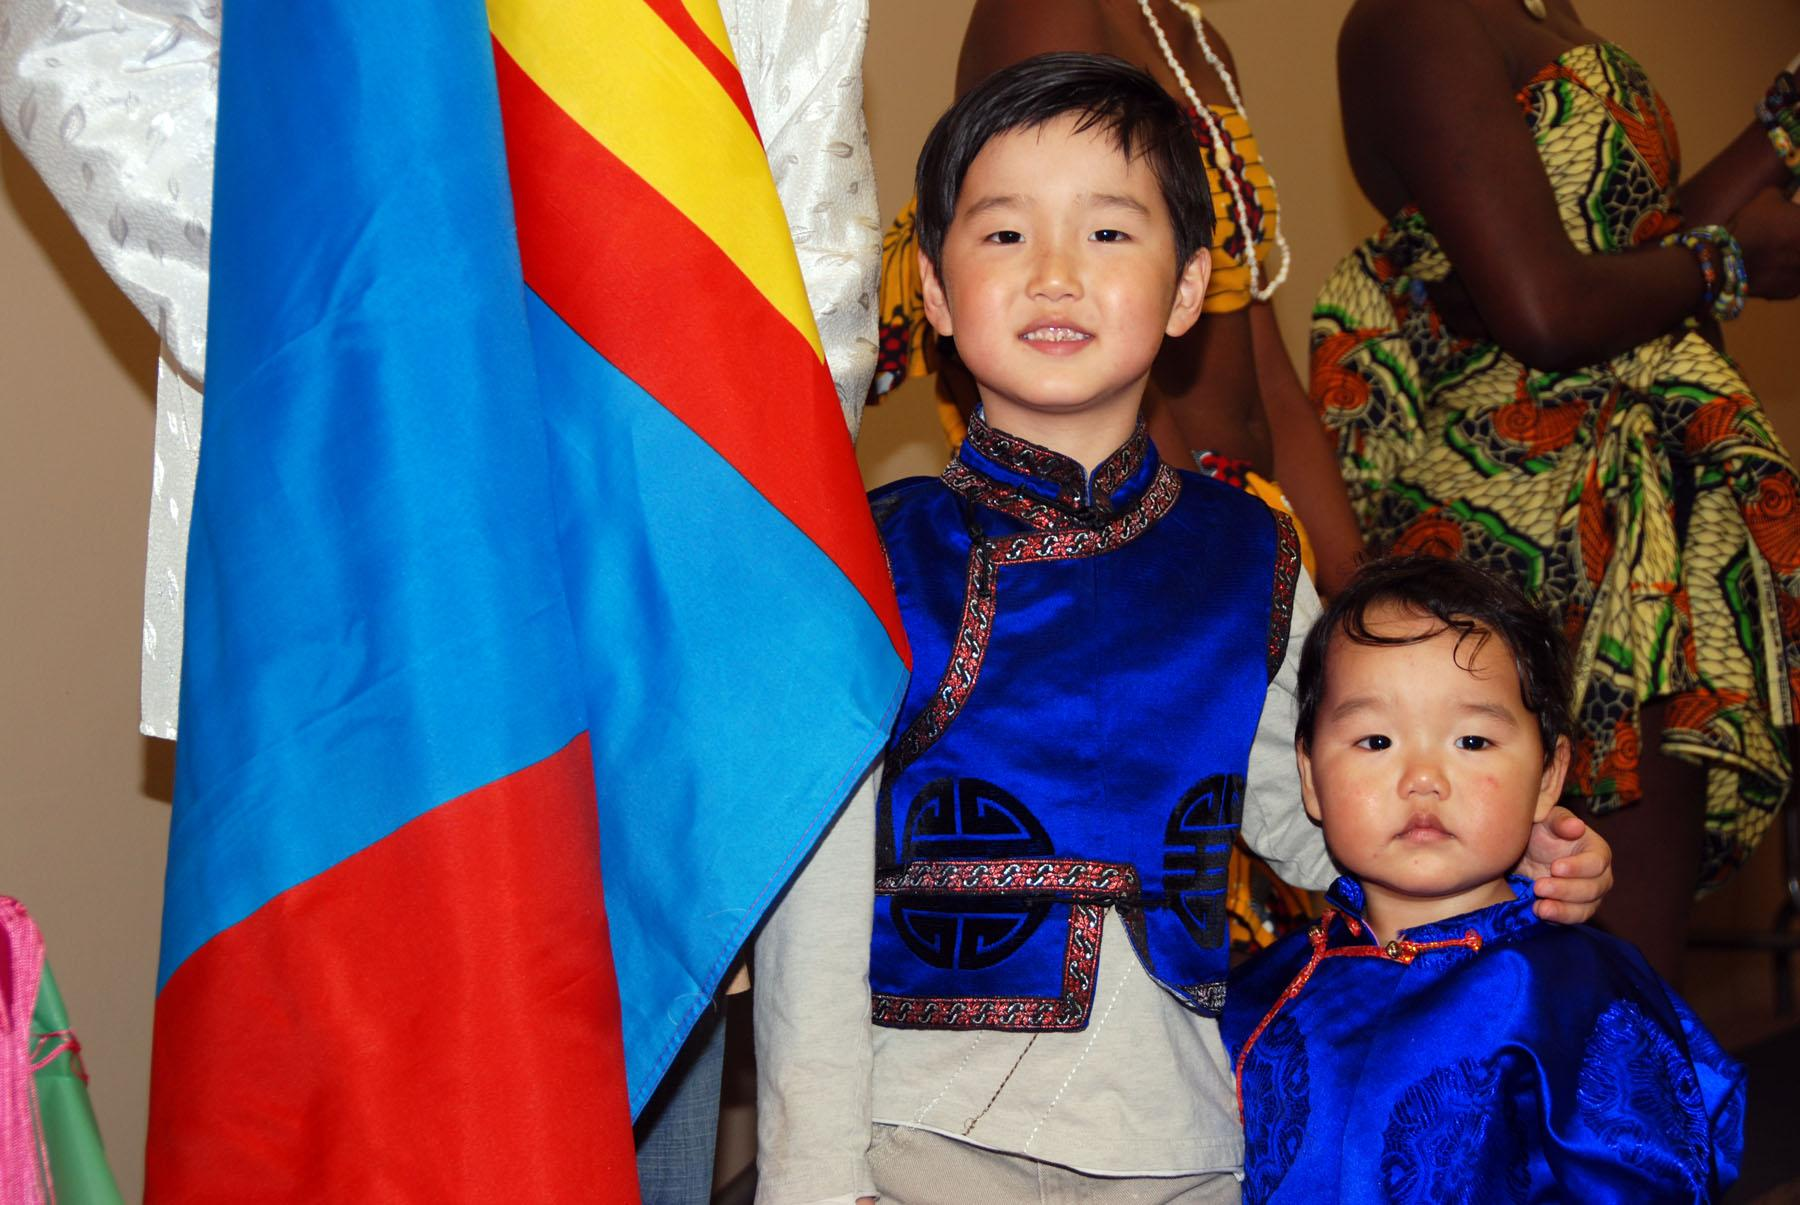 Irmuun Tsogbayar (right) and Ireedui Tsogbayar (left) stand next to their father as he holds the flag of Mongolia during a parade of flags at the 10th annual Northeast Community College Culture Show Sunday night.Tsogbayar Tsendbaatar is one of 41 international students from 17 countries attending Northeast this year.